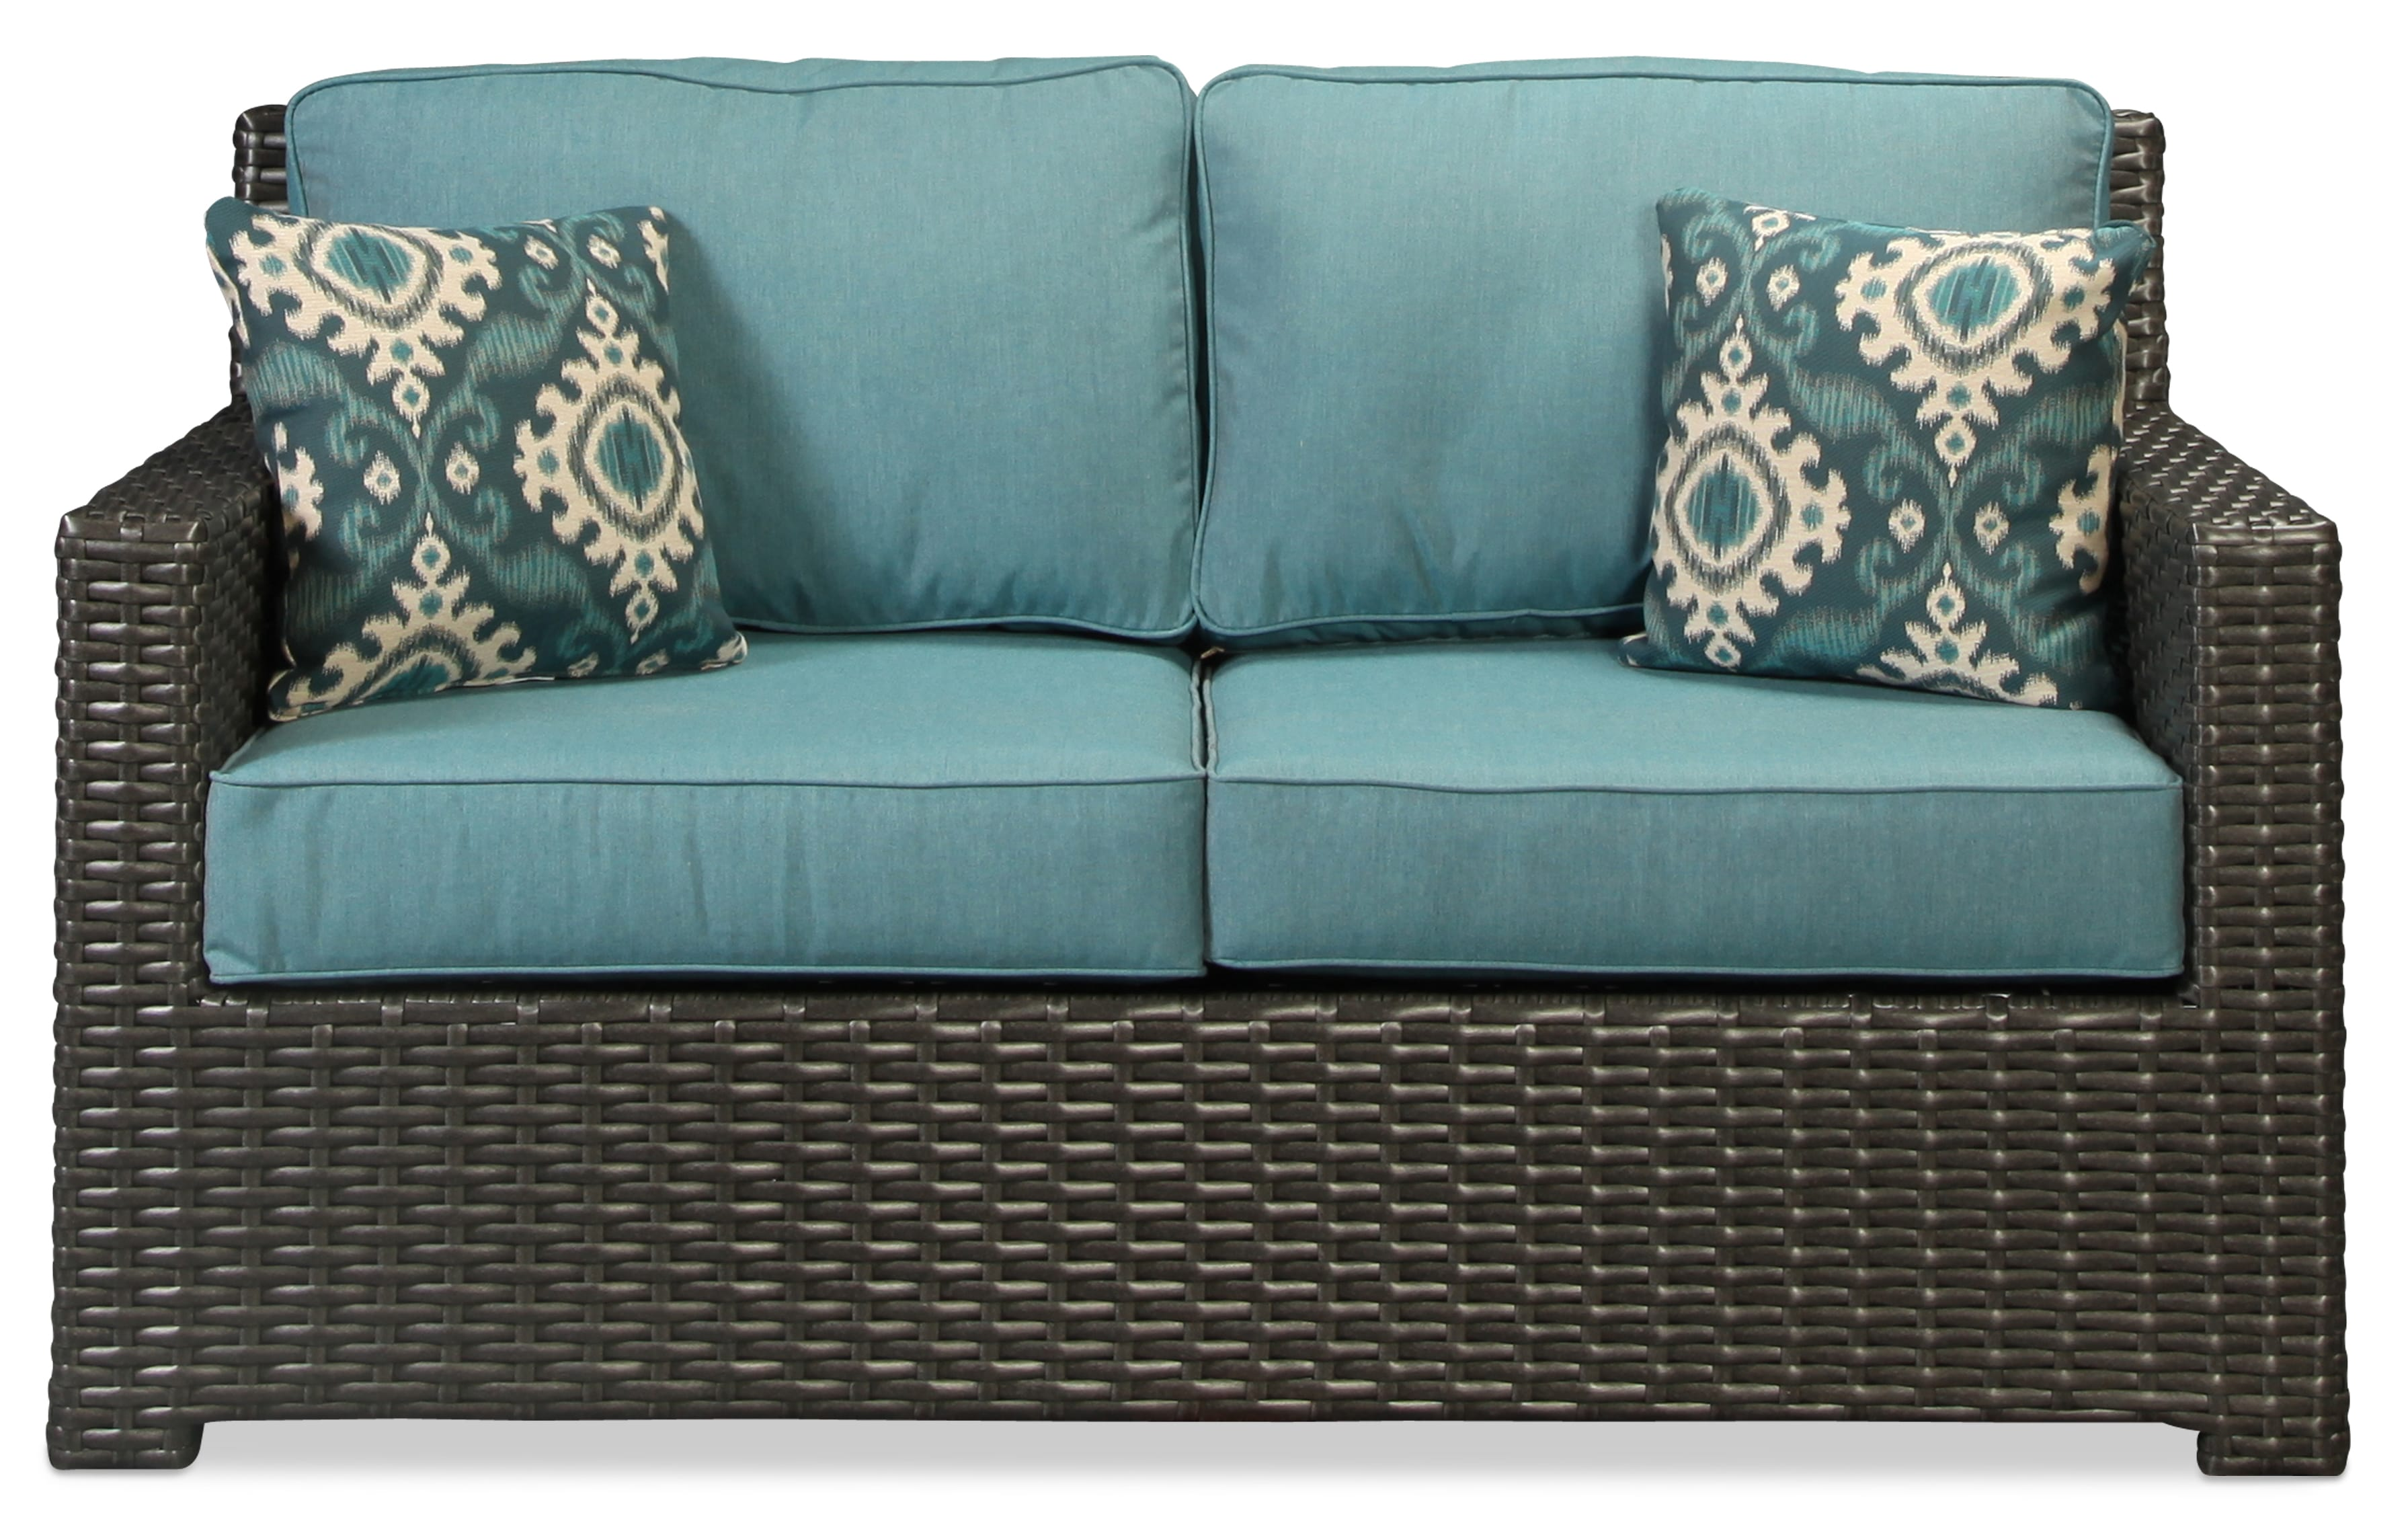 Northport Lagoon Loveseat